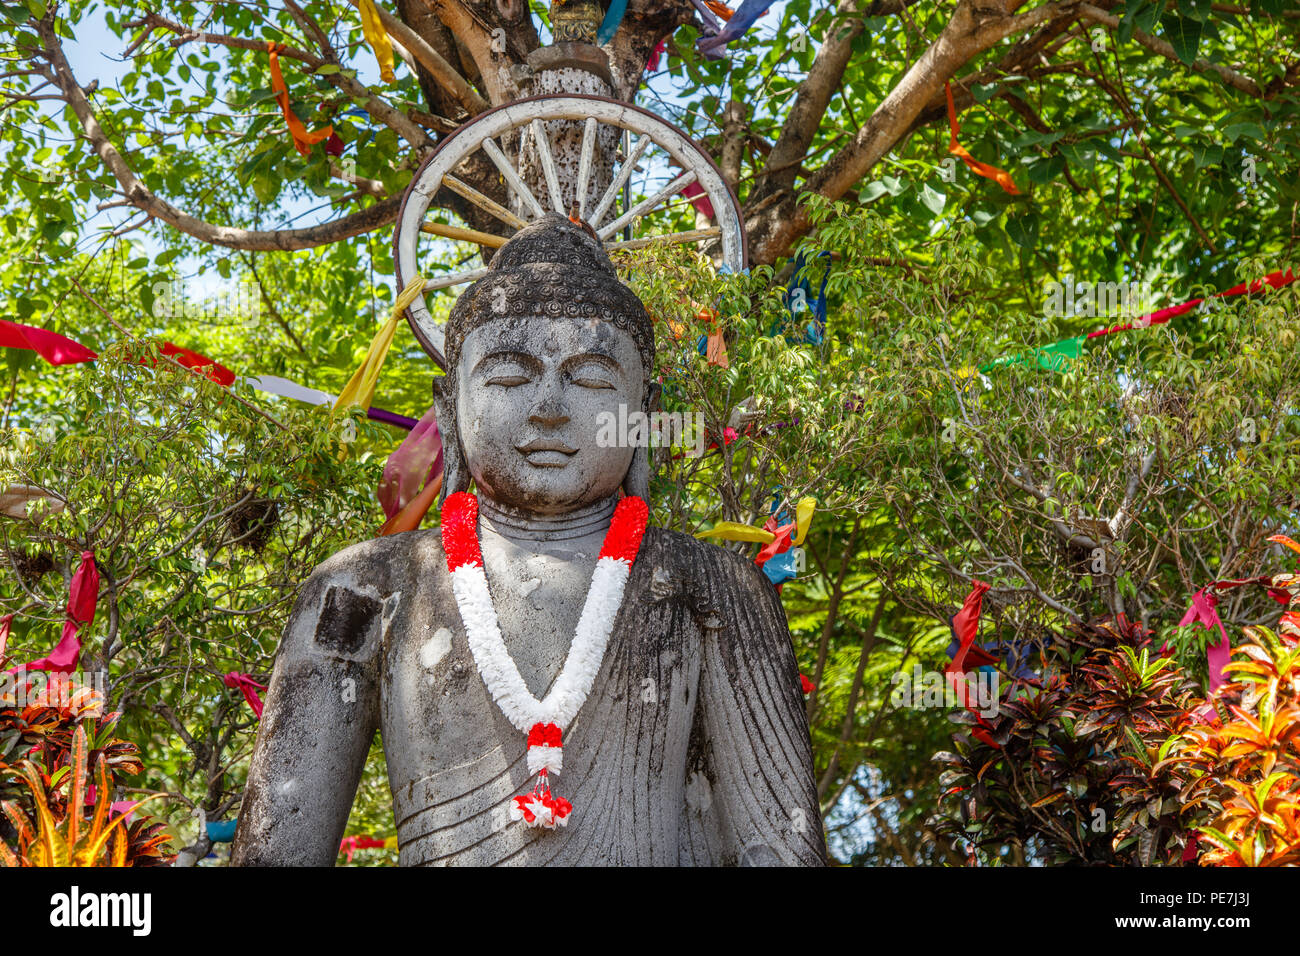 Stone statue of Sitting Buddha under the tree, with a garland in red and white colors of Indonesian flag for Indonesia Independence Day, Bali, Indones Stock Photo